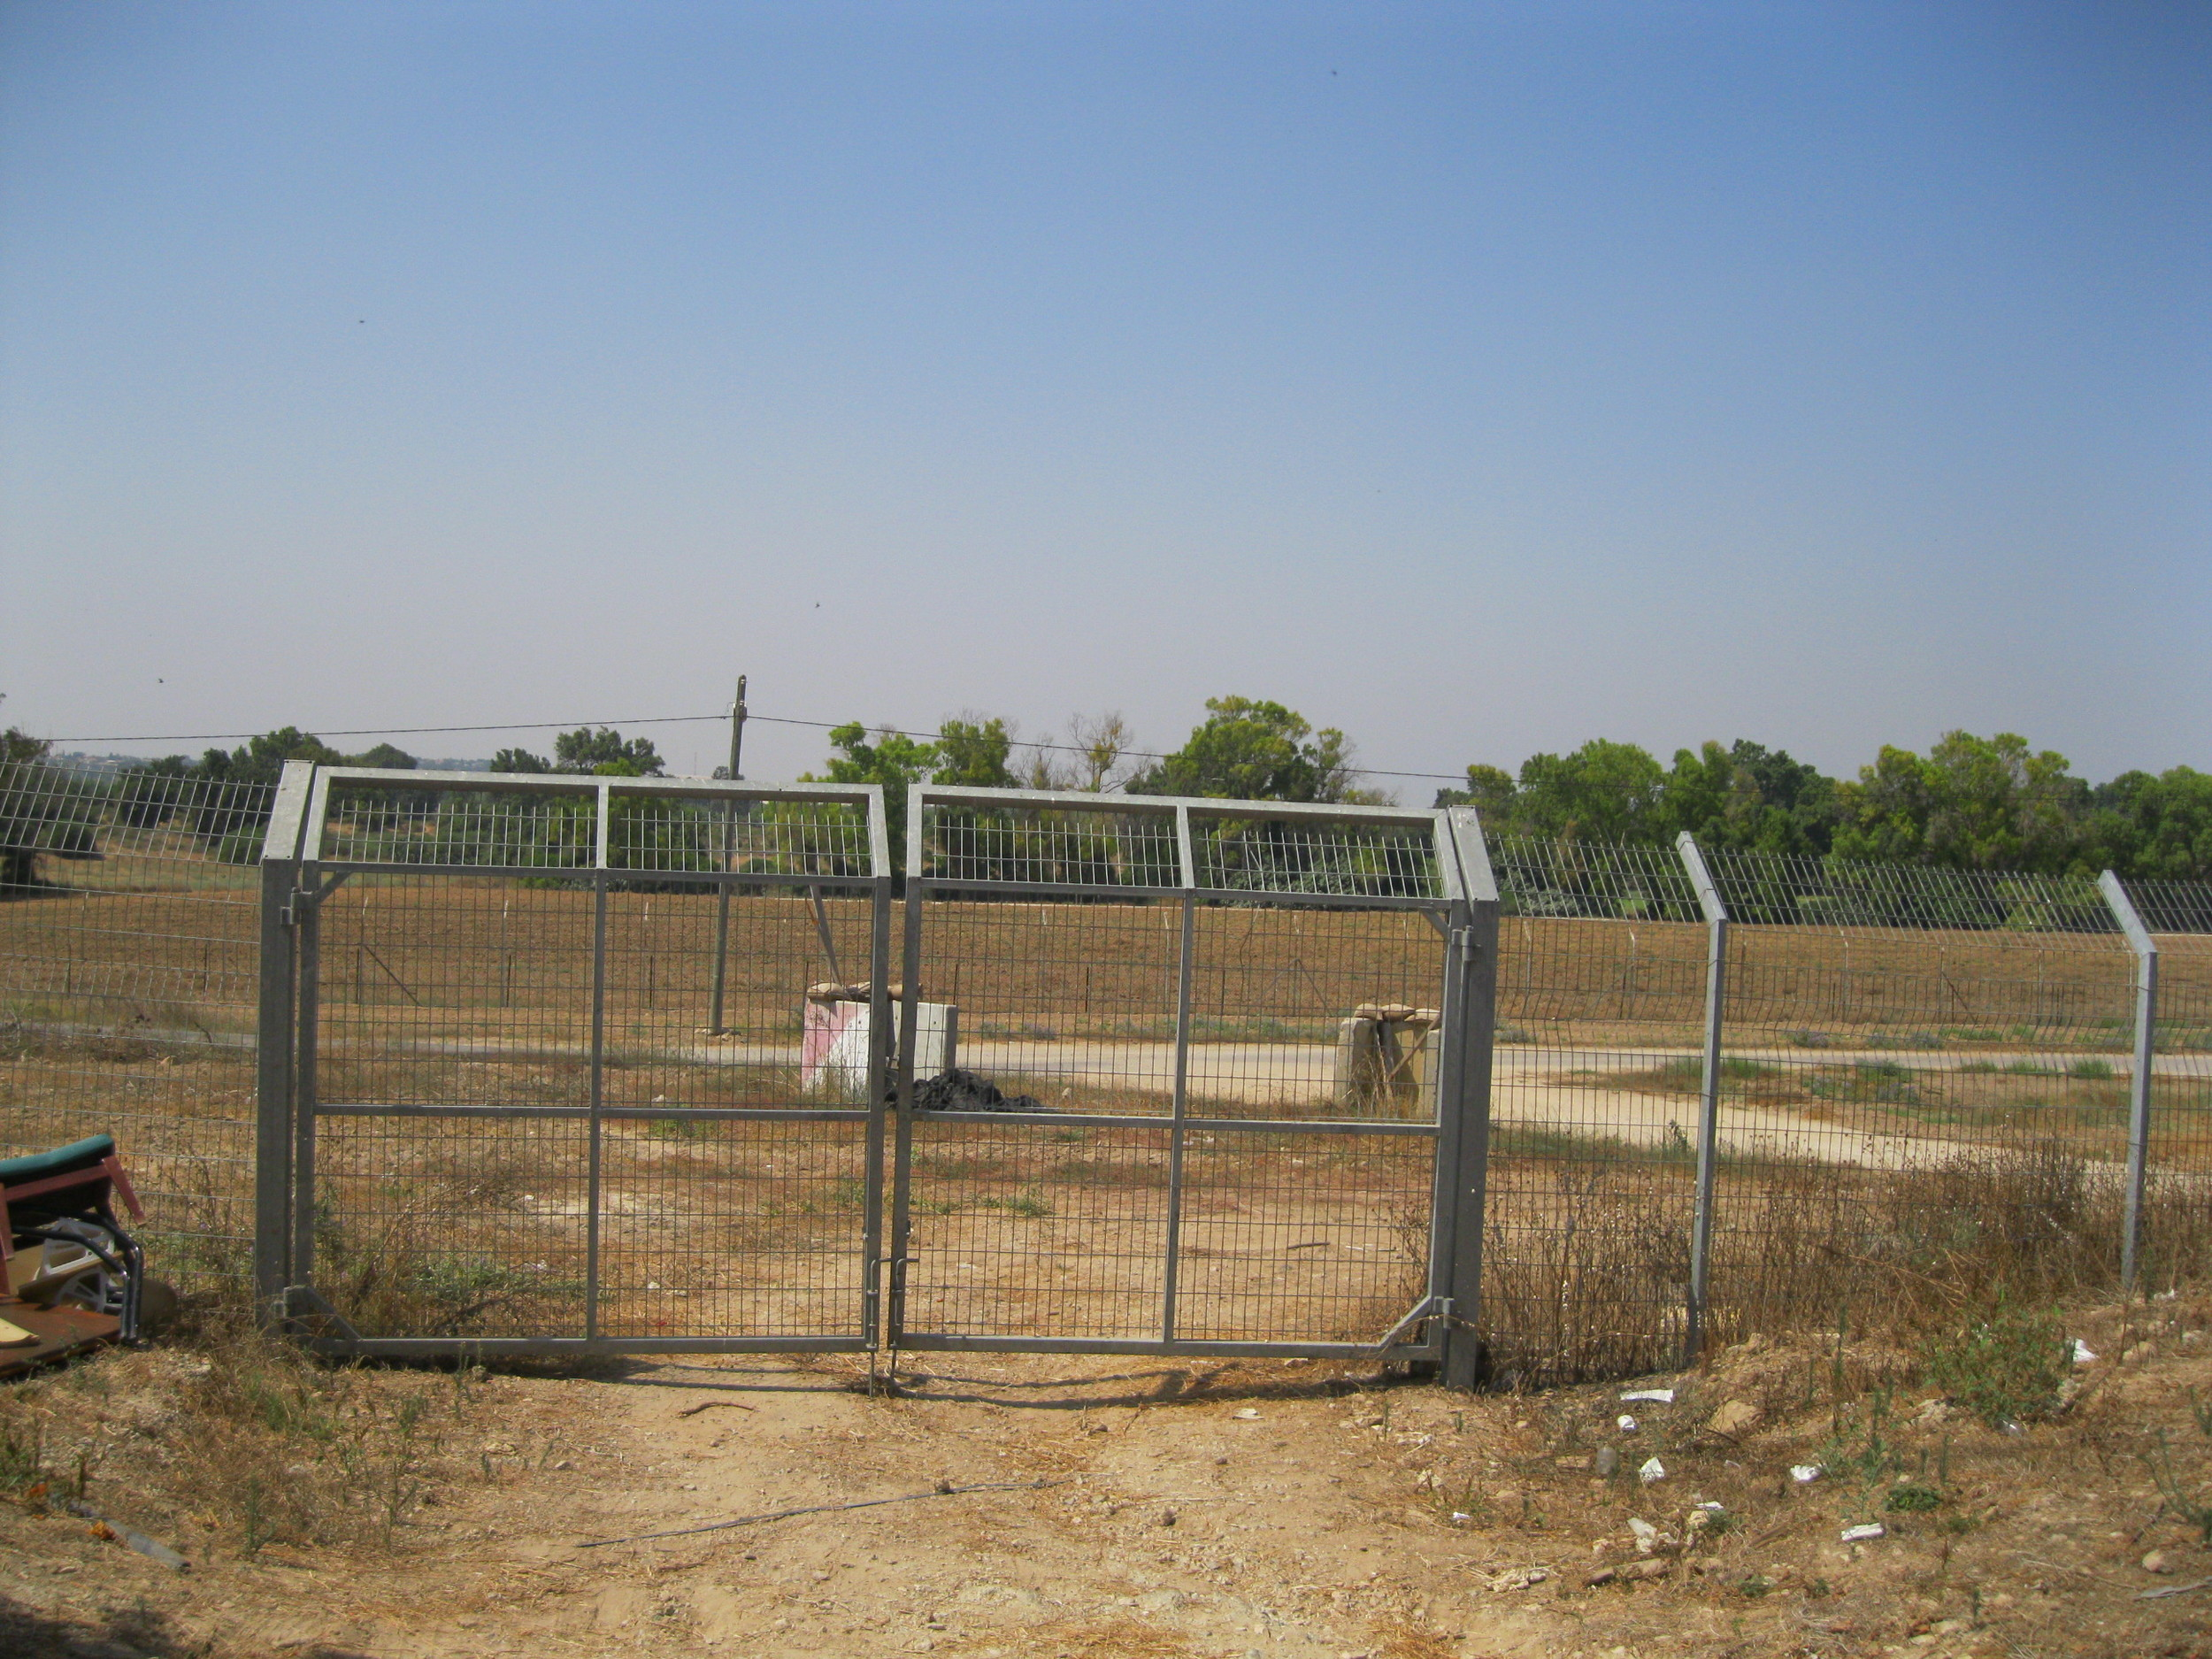 Just beyond this gate was the outpost for the Israel Defense Force during last year's Operation Protective Edge War